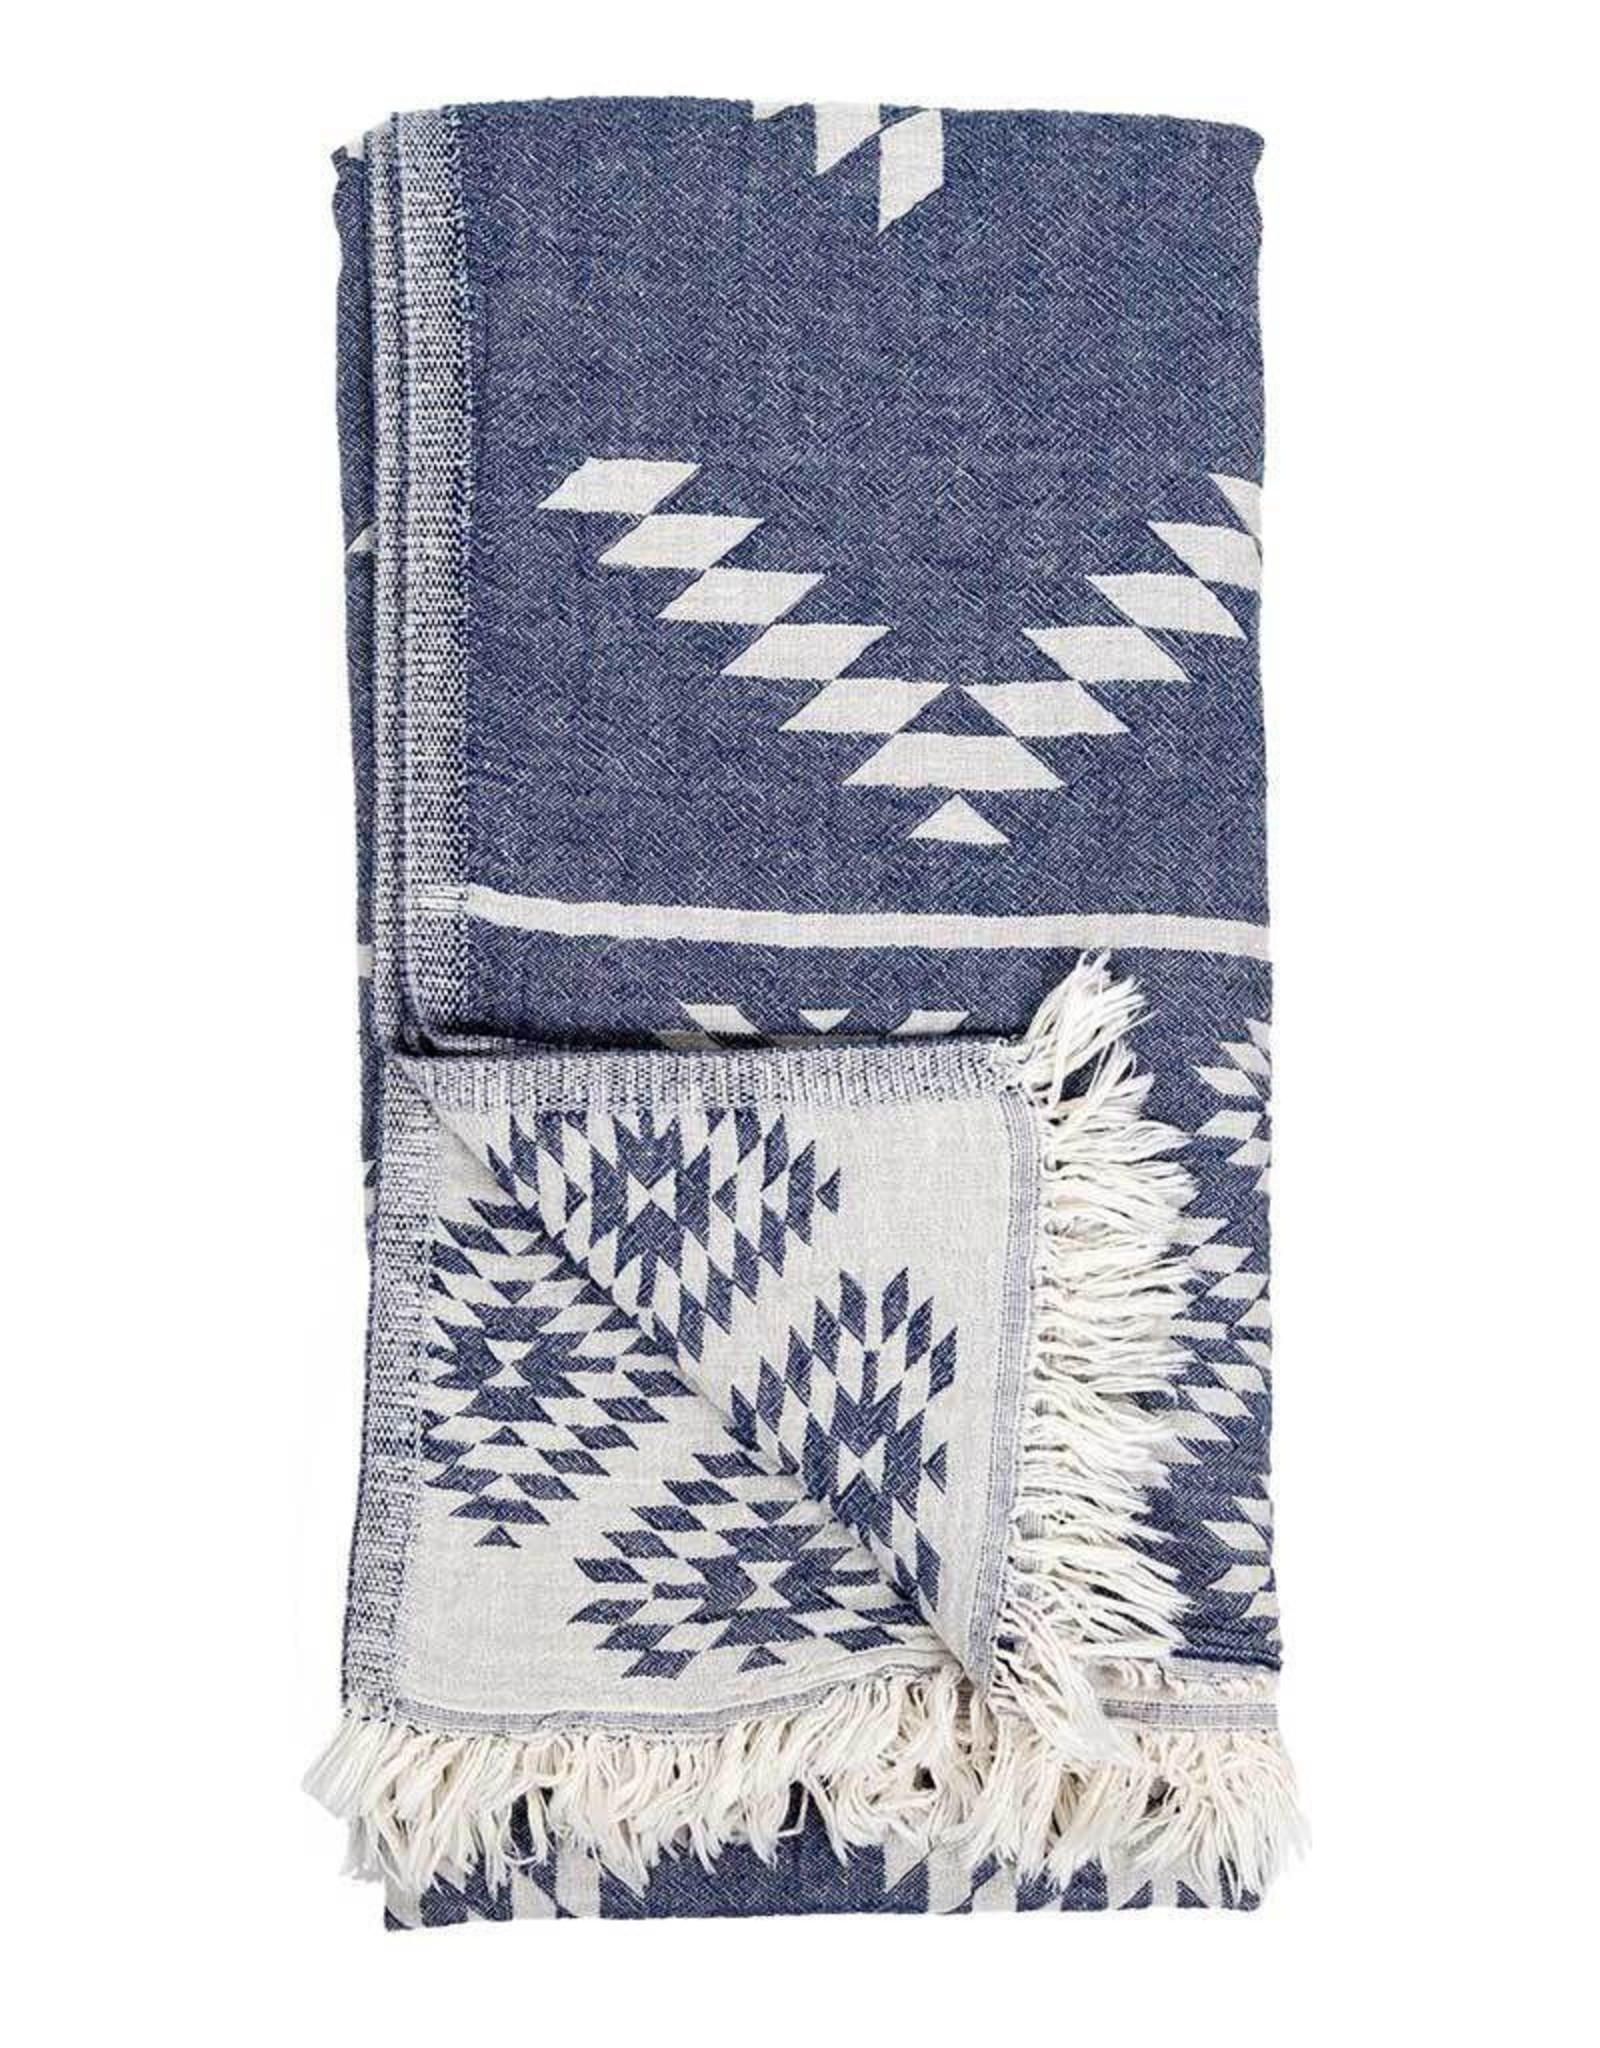 Pokoloko Turkish Towel Pokoloko Geometric Cowboy Denim TTGE1